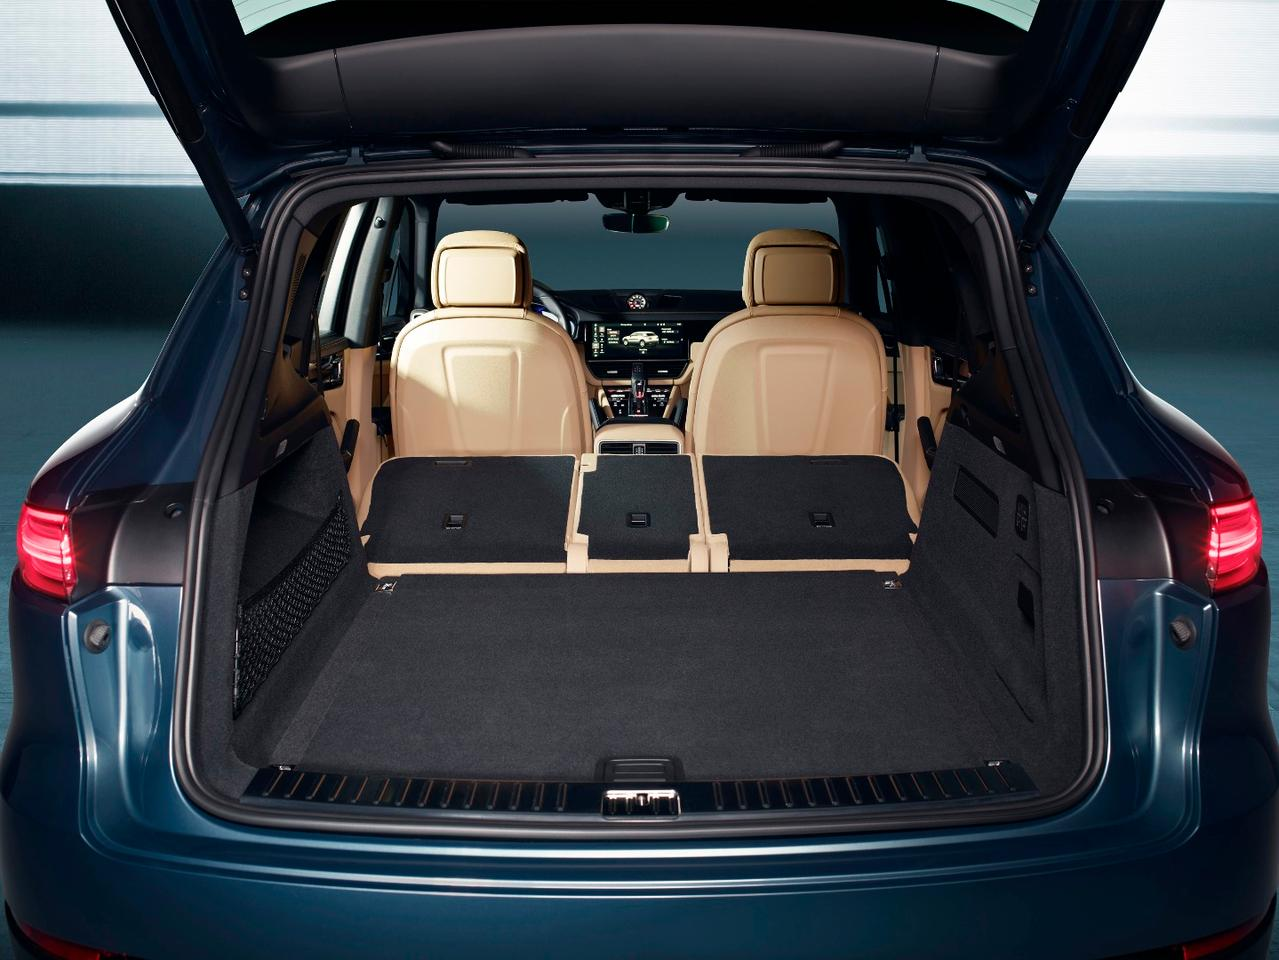 The trunk of the new Porsche Cayenne